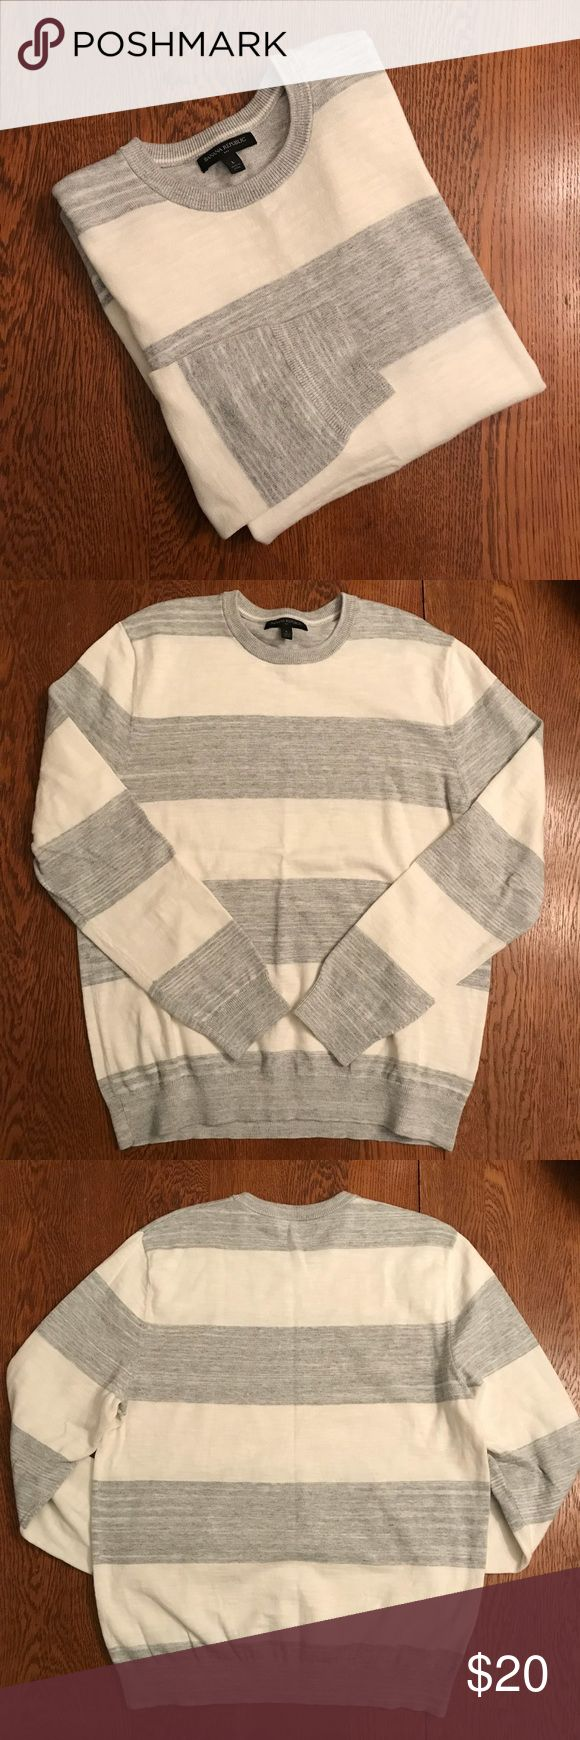 Banana Republic Mens Crewneck Sweater Classic gray and white wide striped sweater with crew neck and long sleeves. Lightweight but great quality and warm. Excellent condition!!  📏Size - L  ✨ Materials 100% Cotton  💰Bundle 2 or more items and save!  📸 Follow me on IG @cubbycreekboutique Banana Republic Sweaters Crewneck